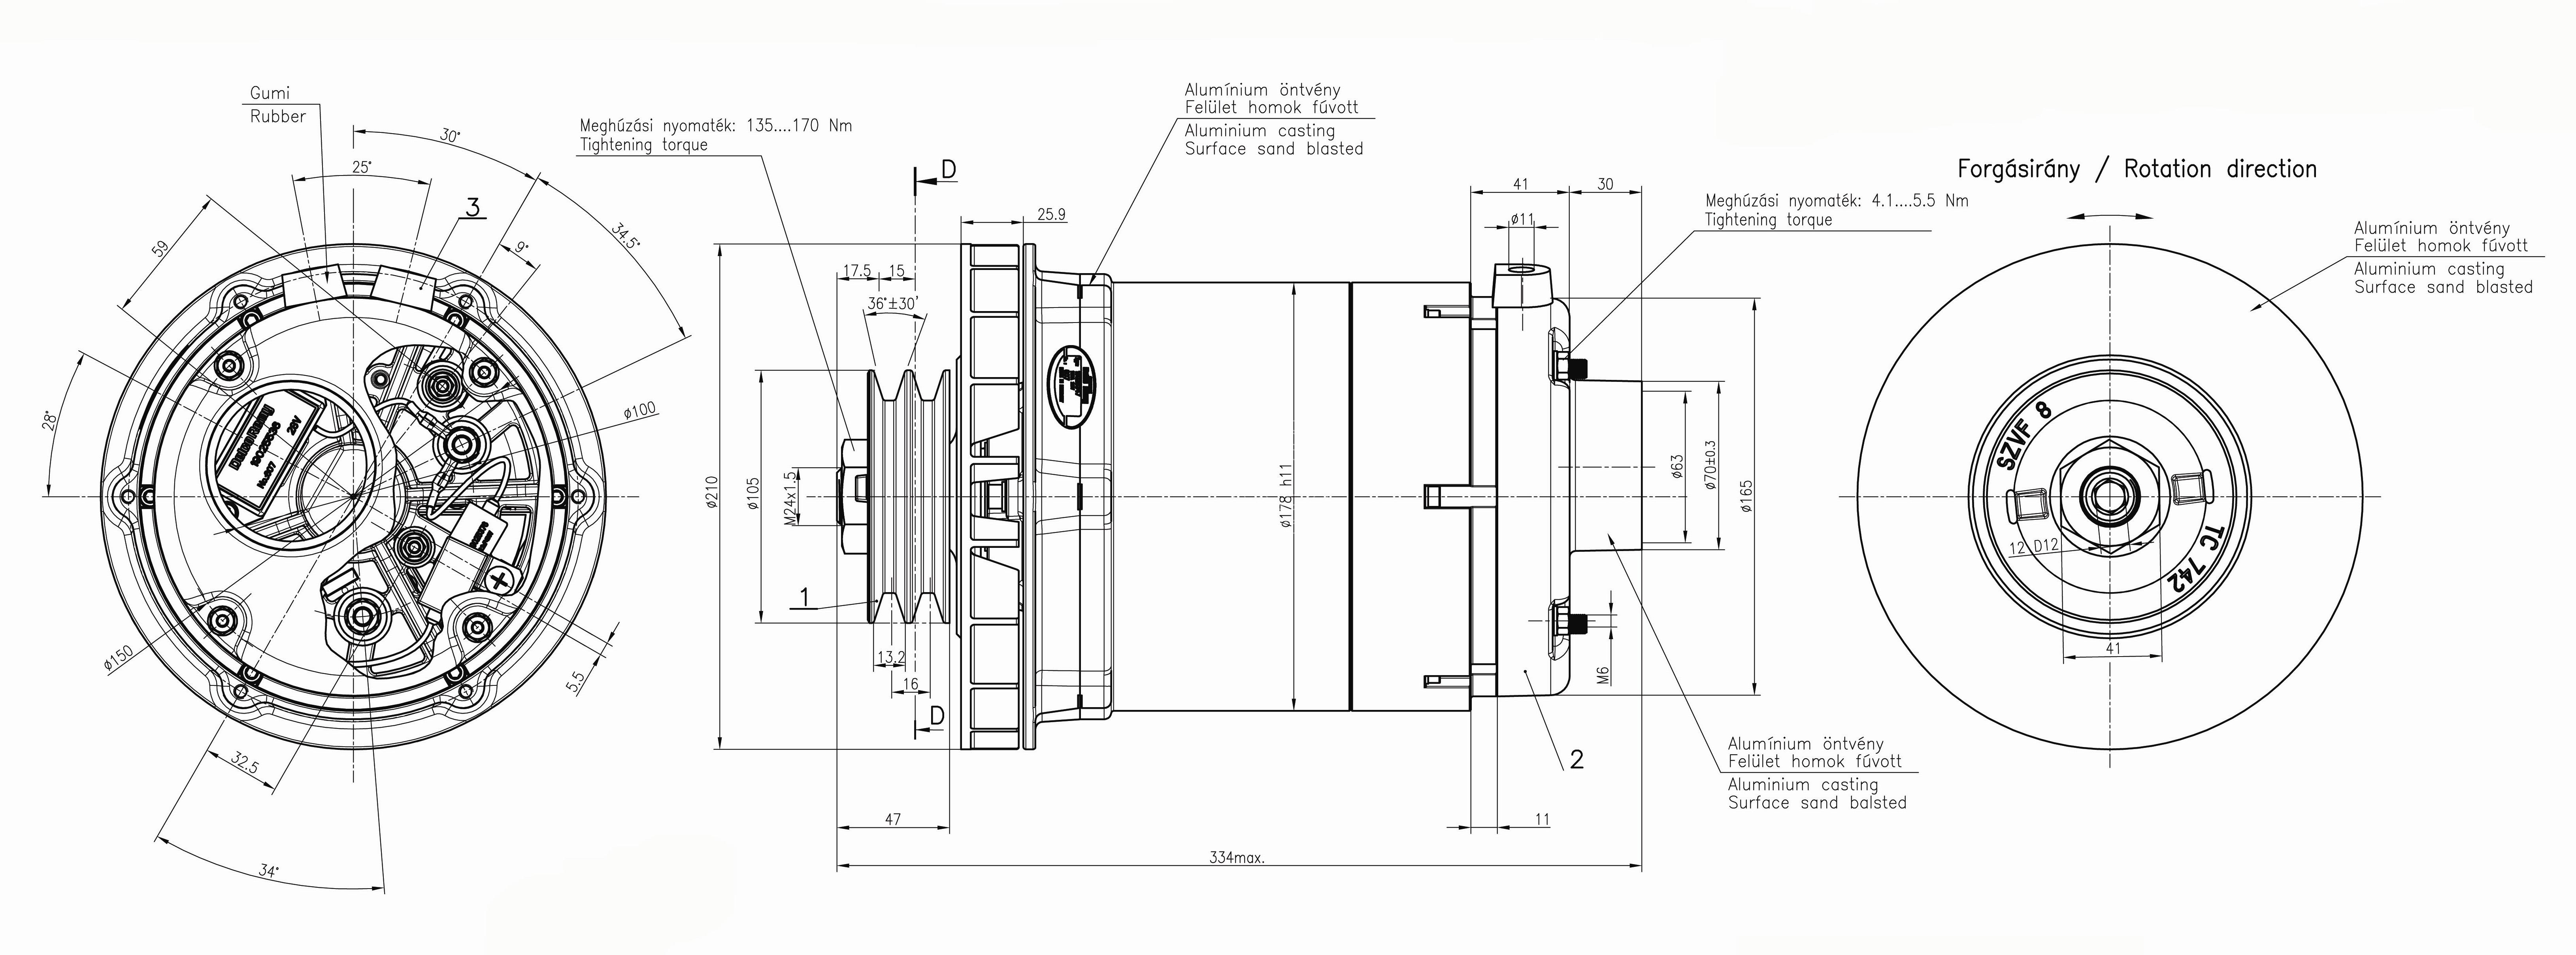 Alternator Delco Remy And Its Equivalences